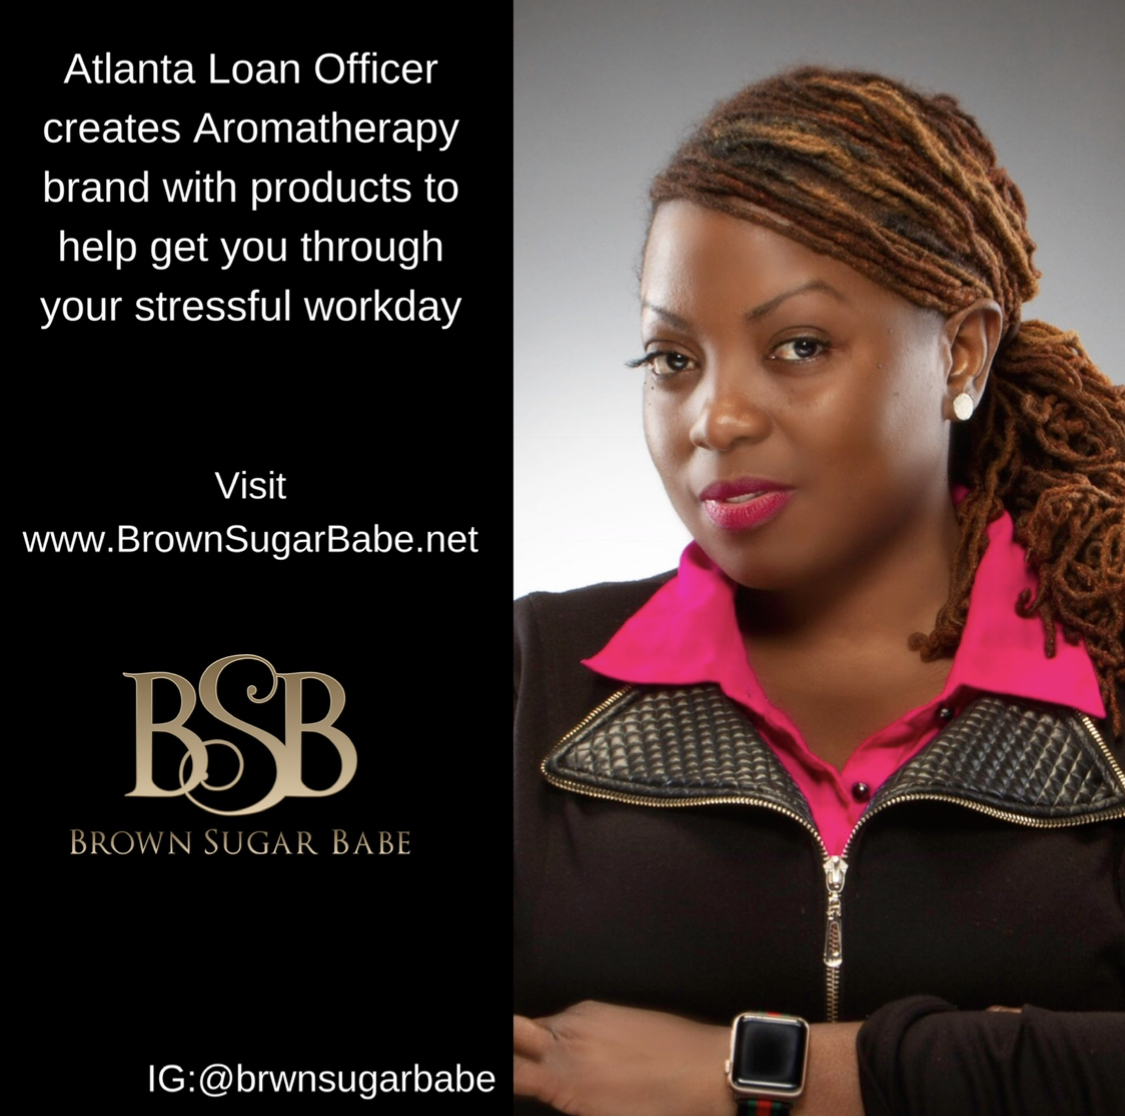 Beauty Meets Aromatherapy in the Newly Launched Brown Sugar Babe Skincare Collection 11